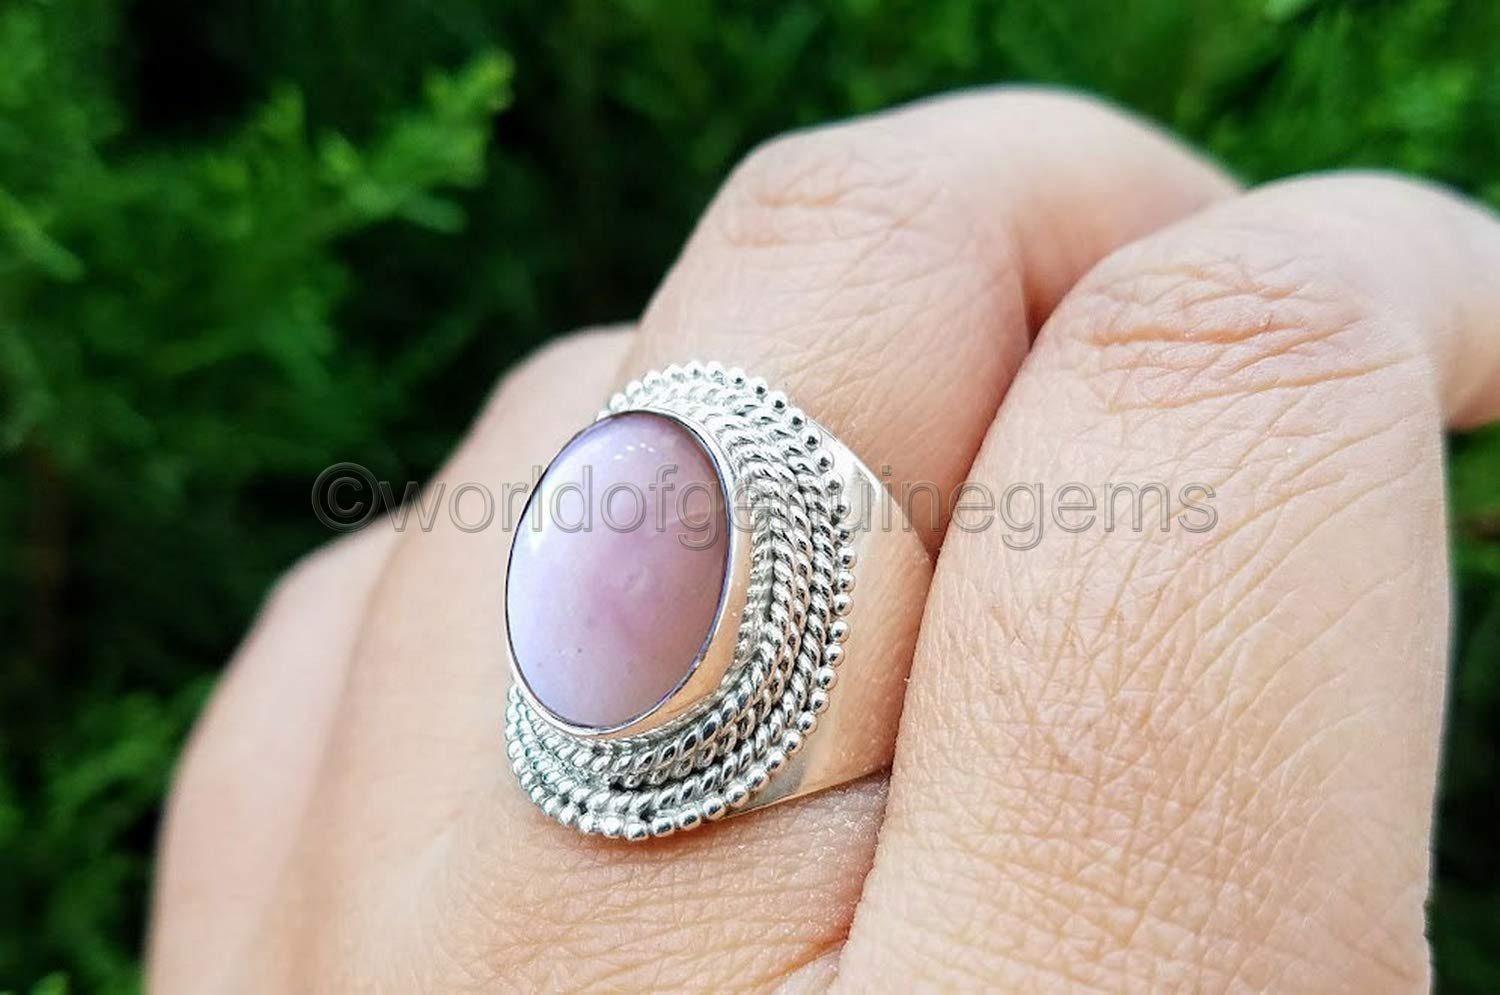 Party Wear Jewelry From India Pink Doublet Opal Rings AJR1799 Handmade Silver Rings Beautiful Stone Ring For Christmas Gift For Girl